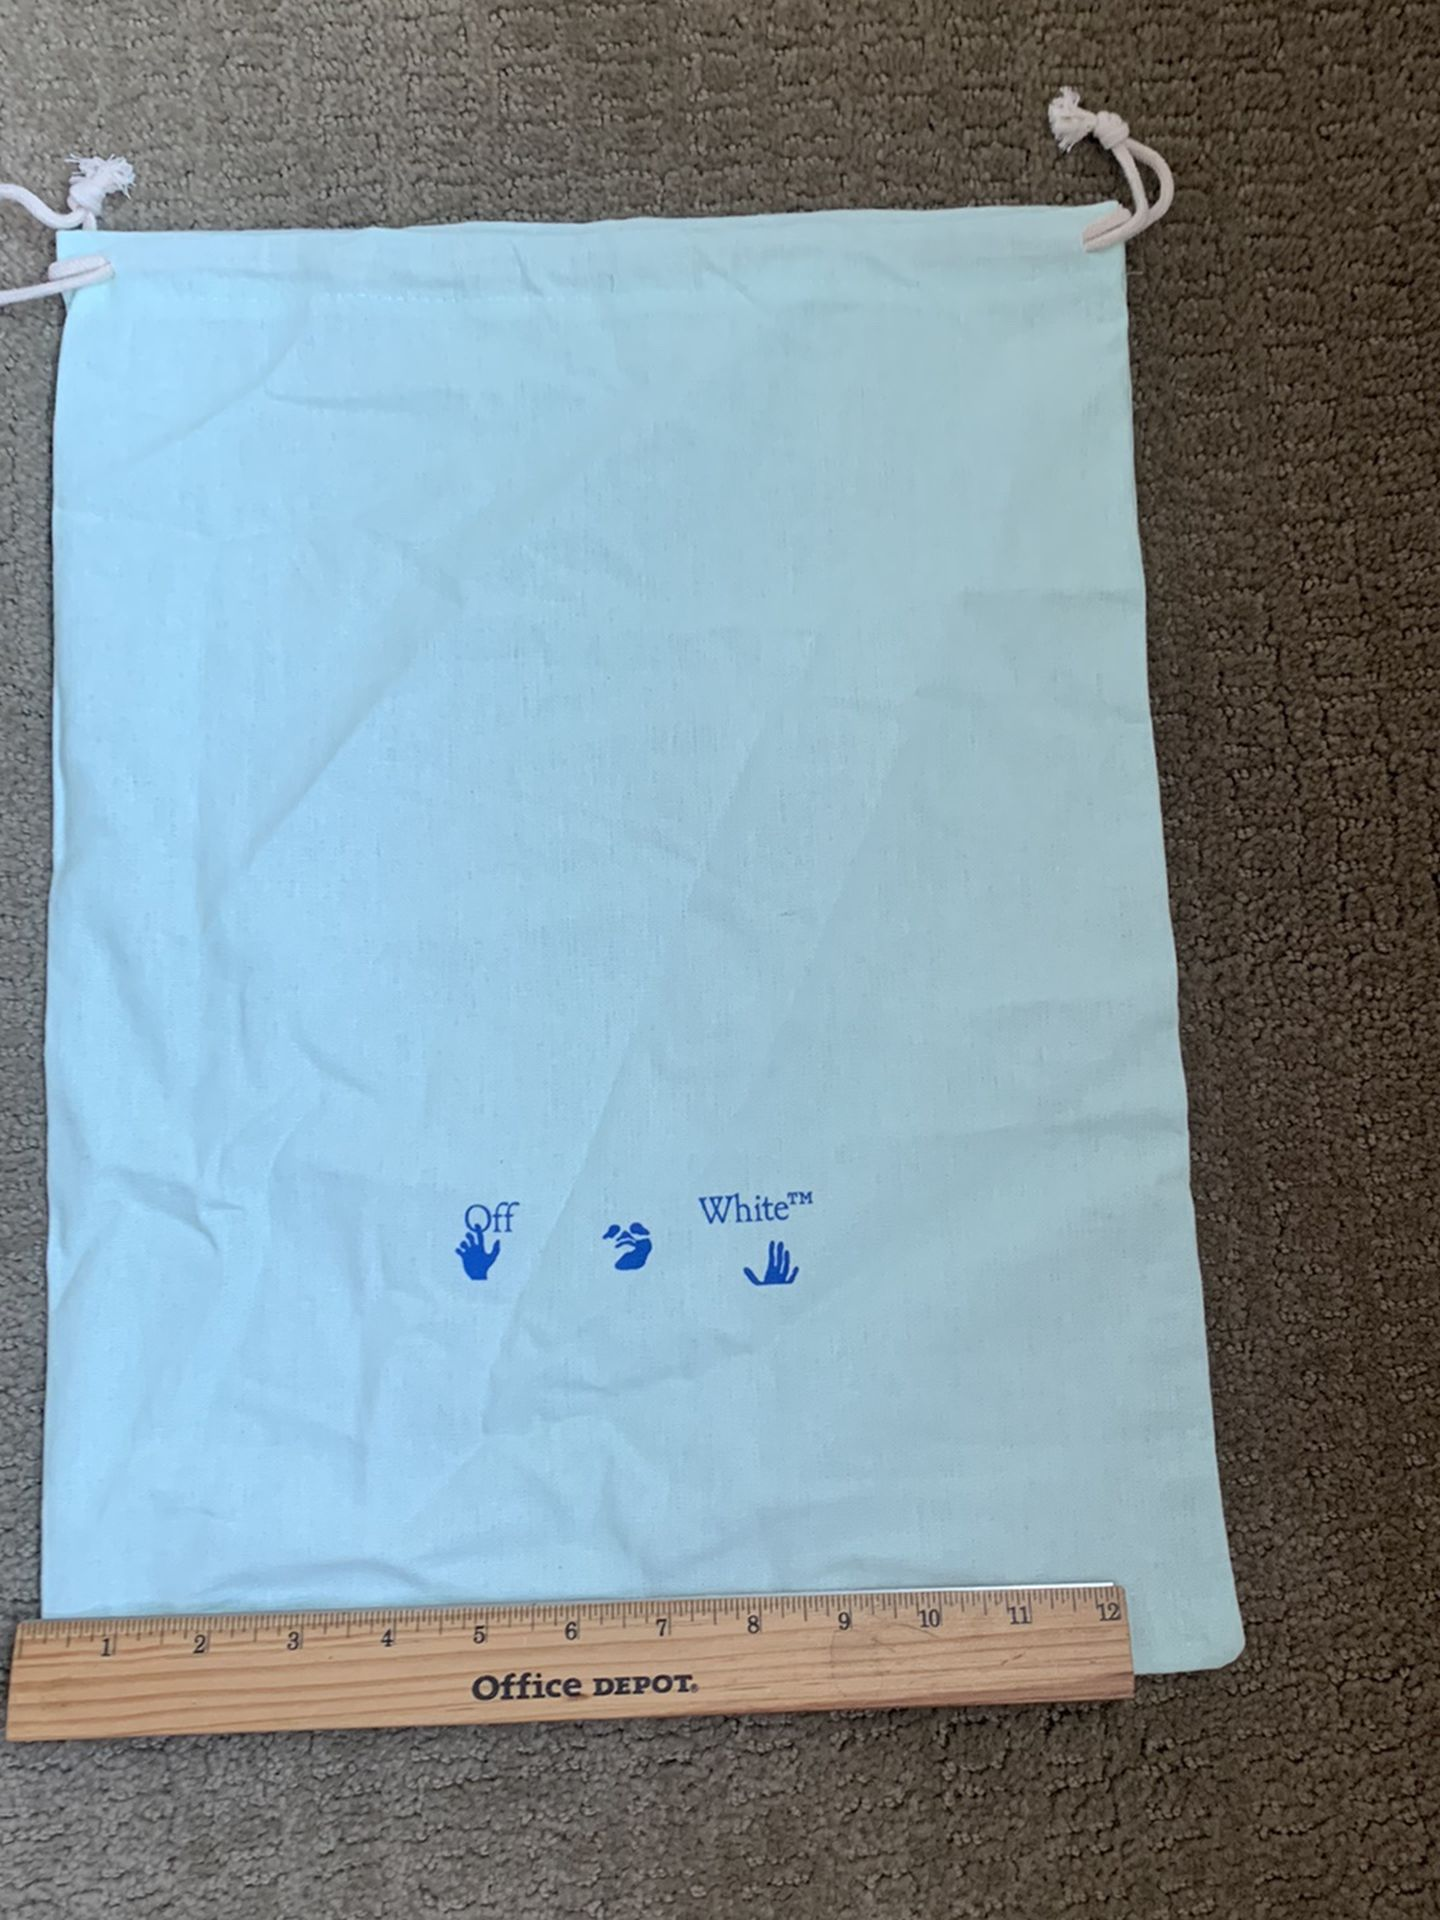 Off White Virgil Abloh Shoe Dust Bag Teal Green New Authentic